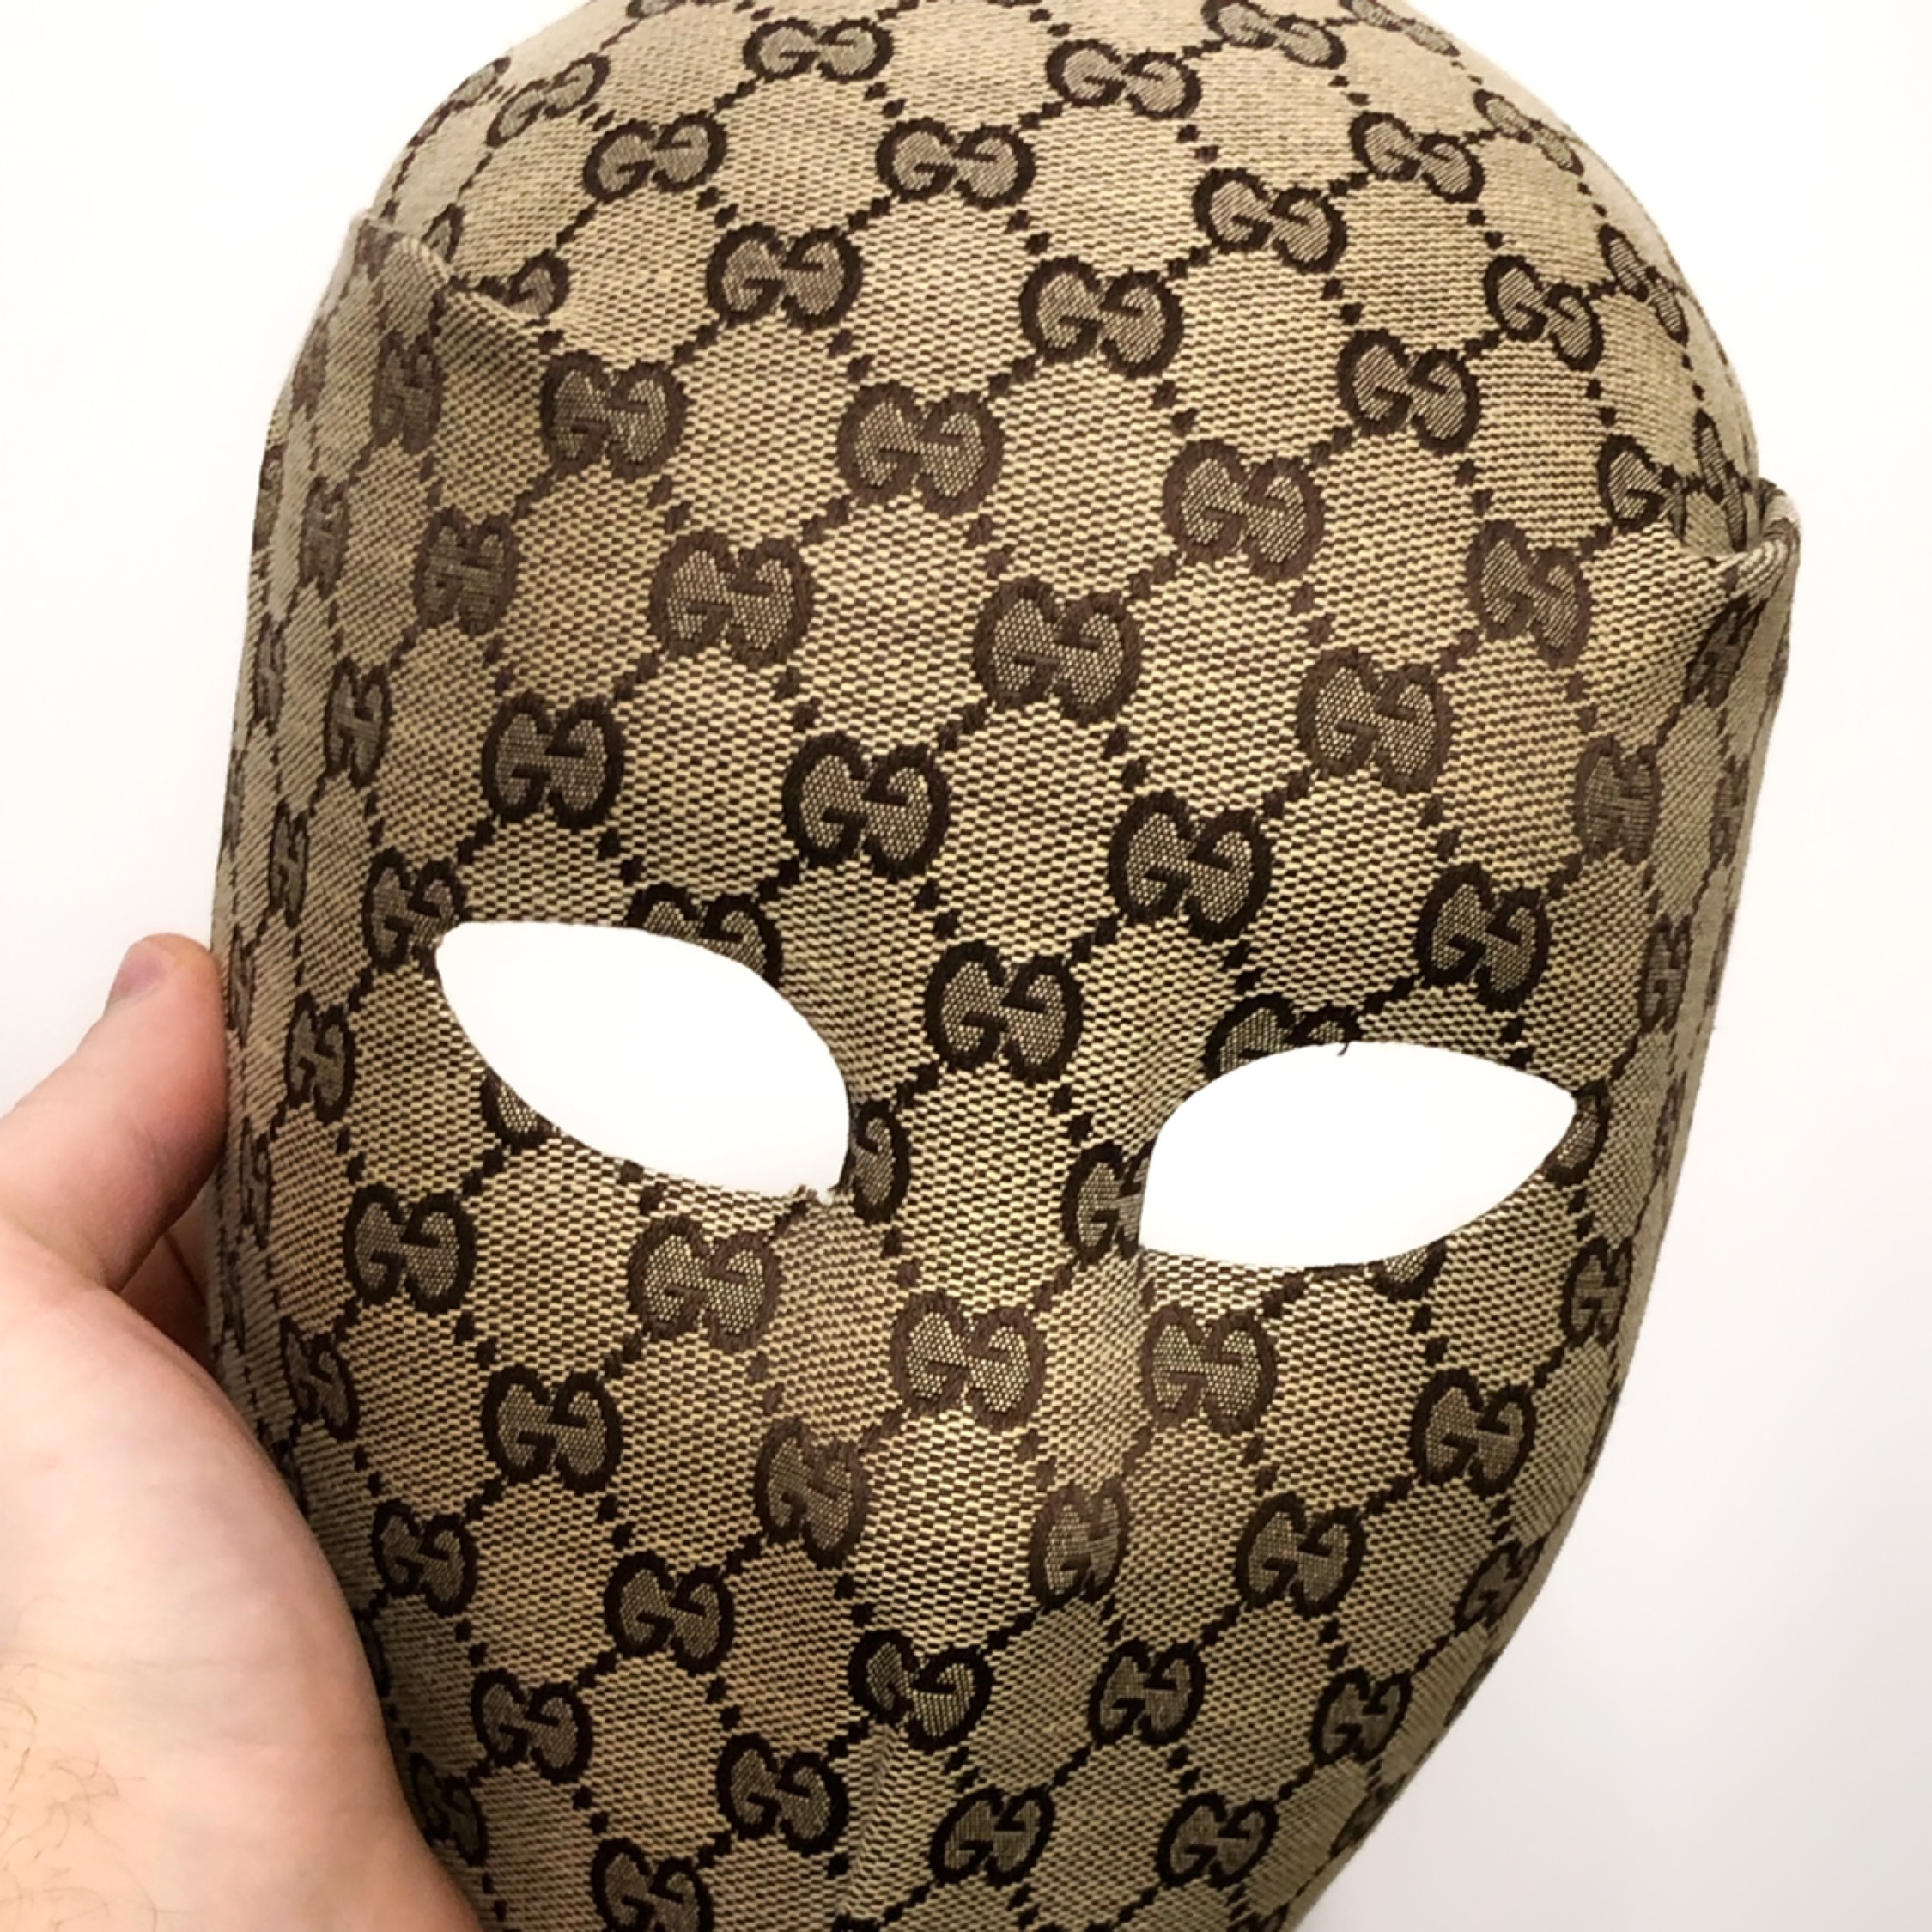 Gucci Head Face Mask Vintage Monogram Bag Custom